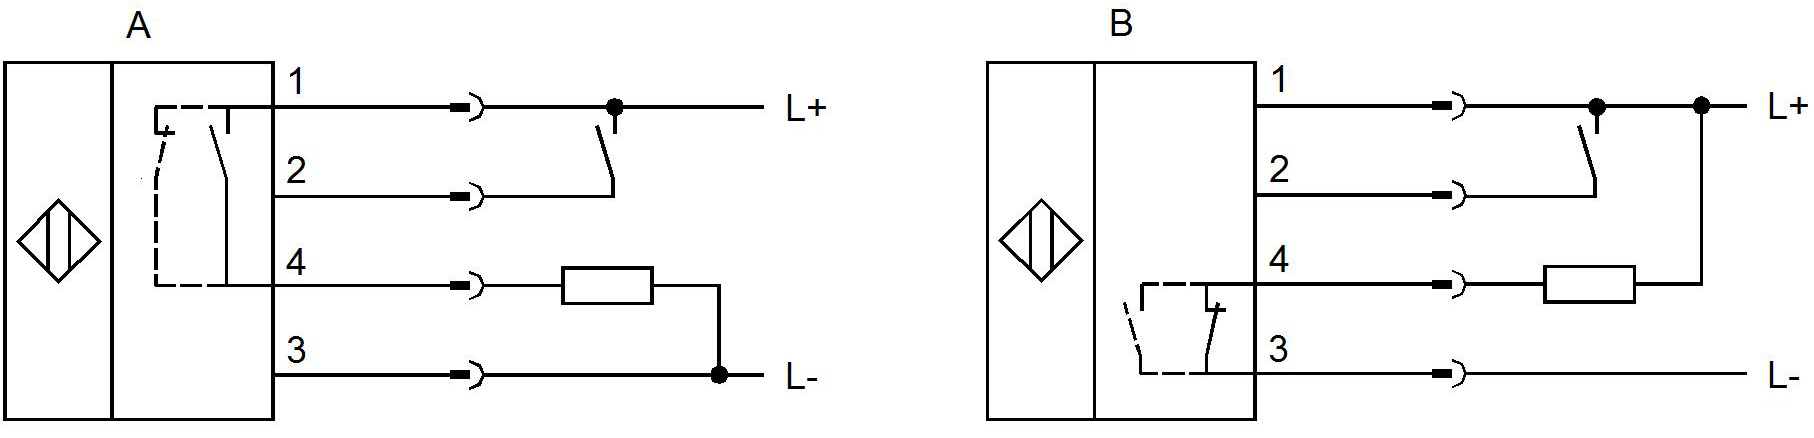 Receiver Pnp Output Wiring Diagram Emitter M12 Library Npn Circuit